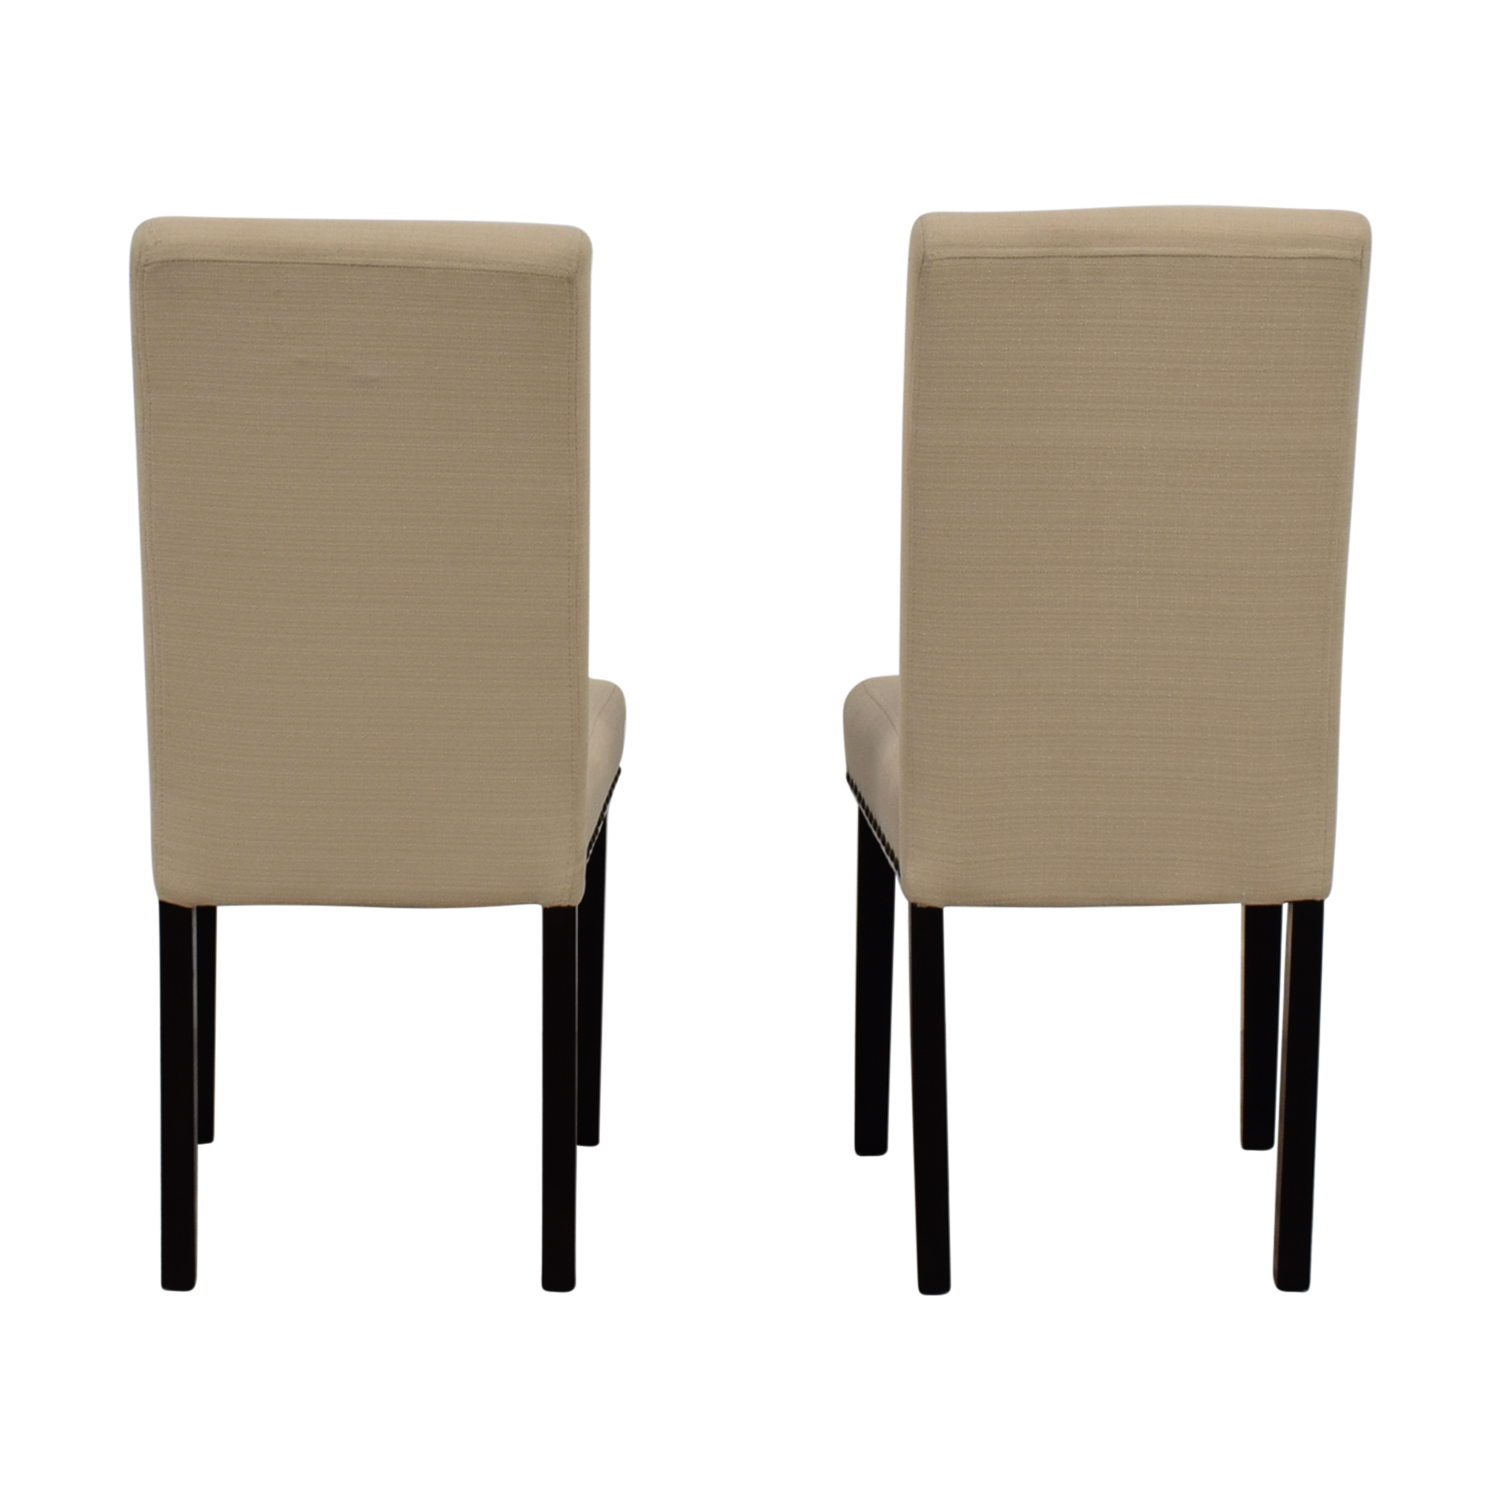 Tremendous 72 Off Dwell Home Furnishings Dwell Home Beige Nailhead Dining Chairs Chairs Inzonedesignstudio Interior Chair Design Inzonedesignstudiocom